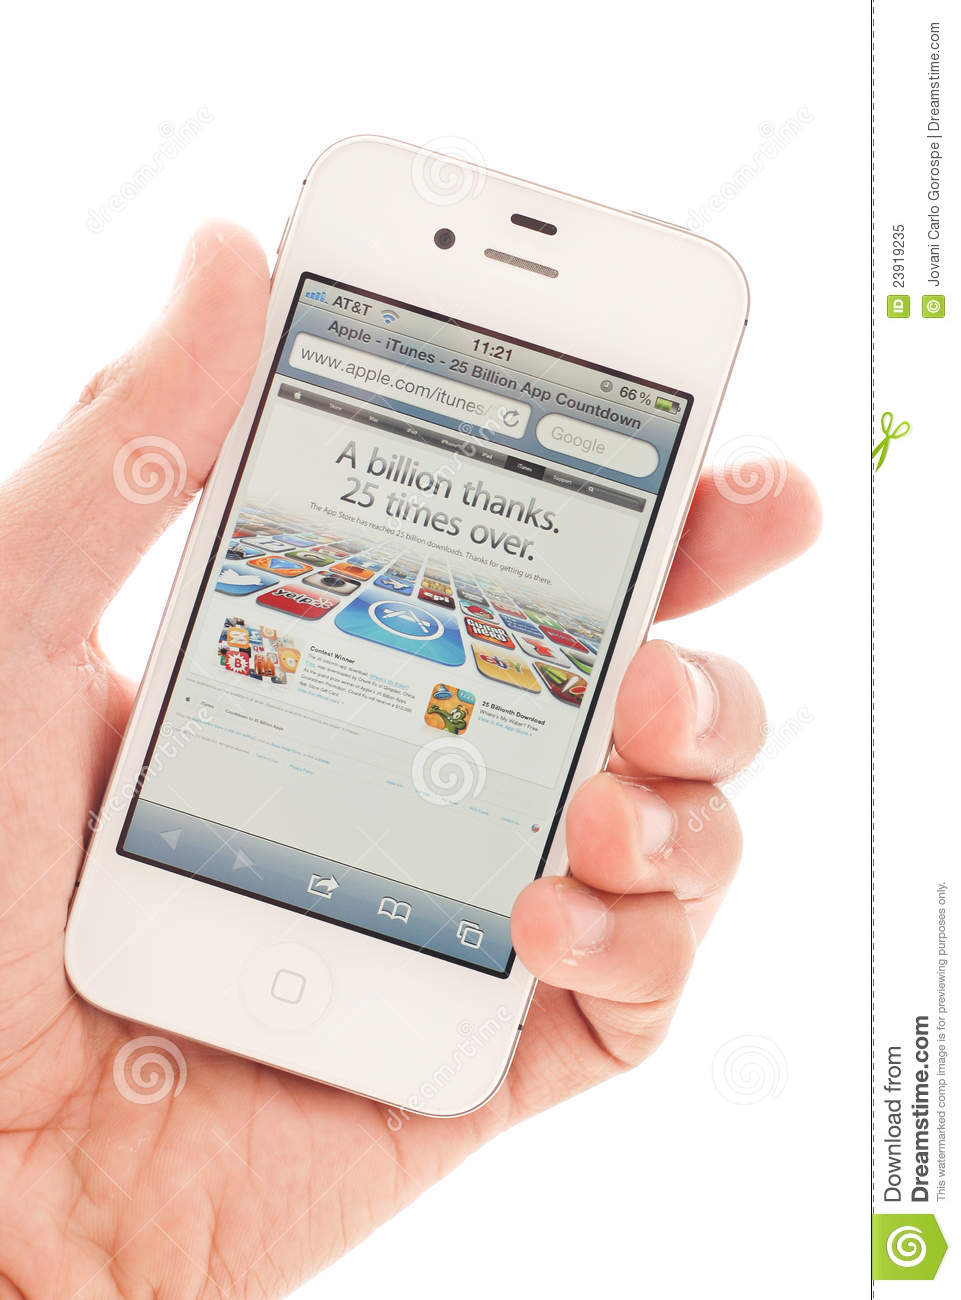 Apple app store at 25 billion downloads: what's your fav?